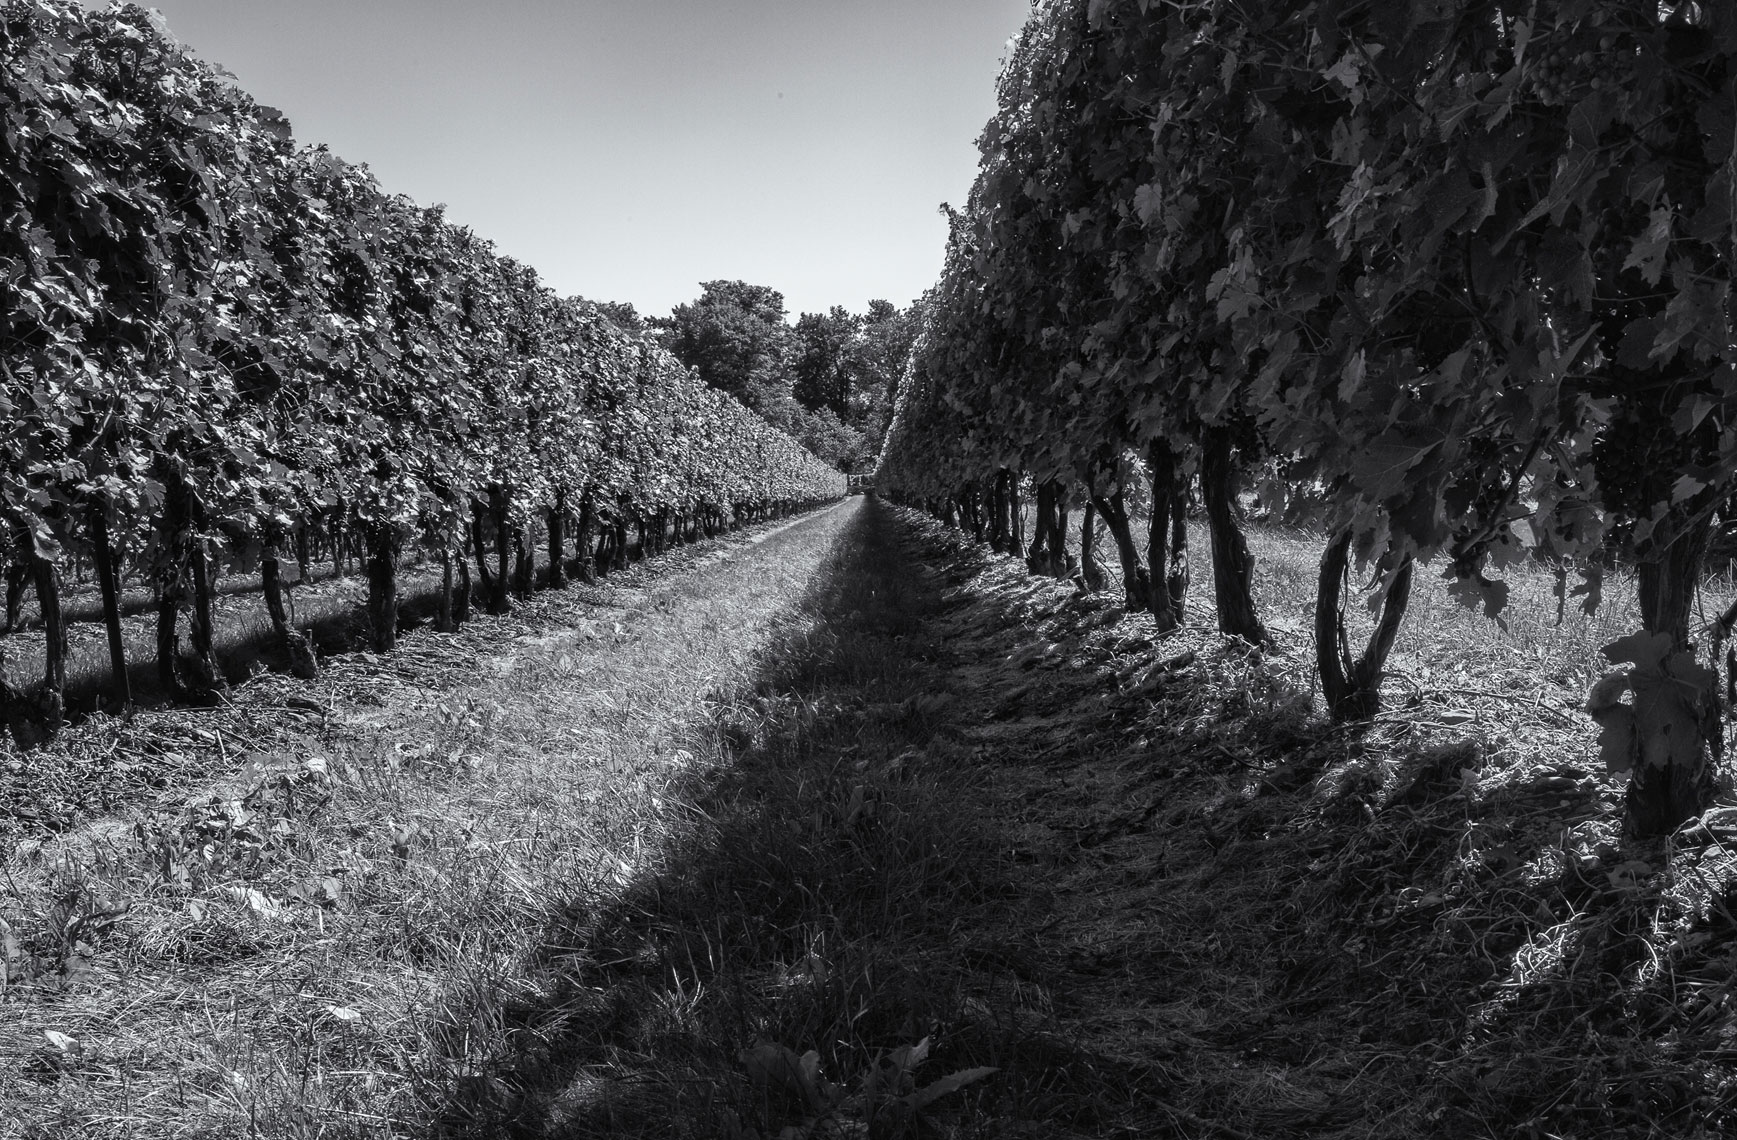 Peller-Vineyard-Perspective-webres